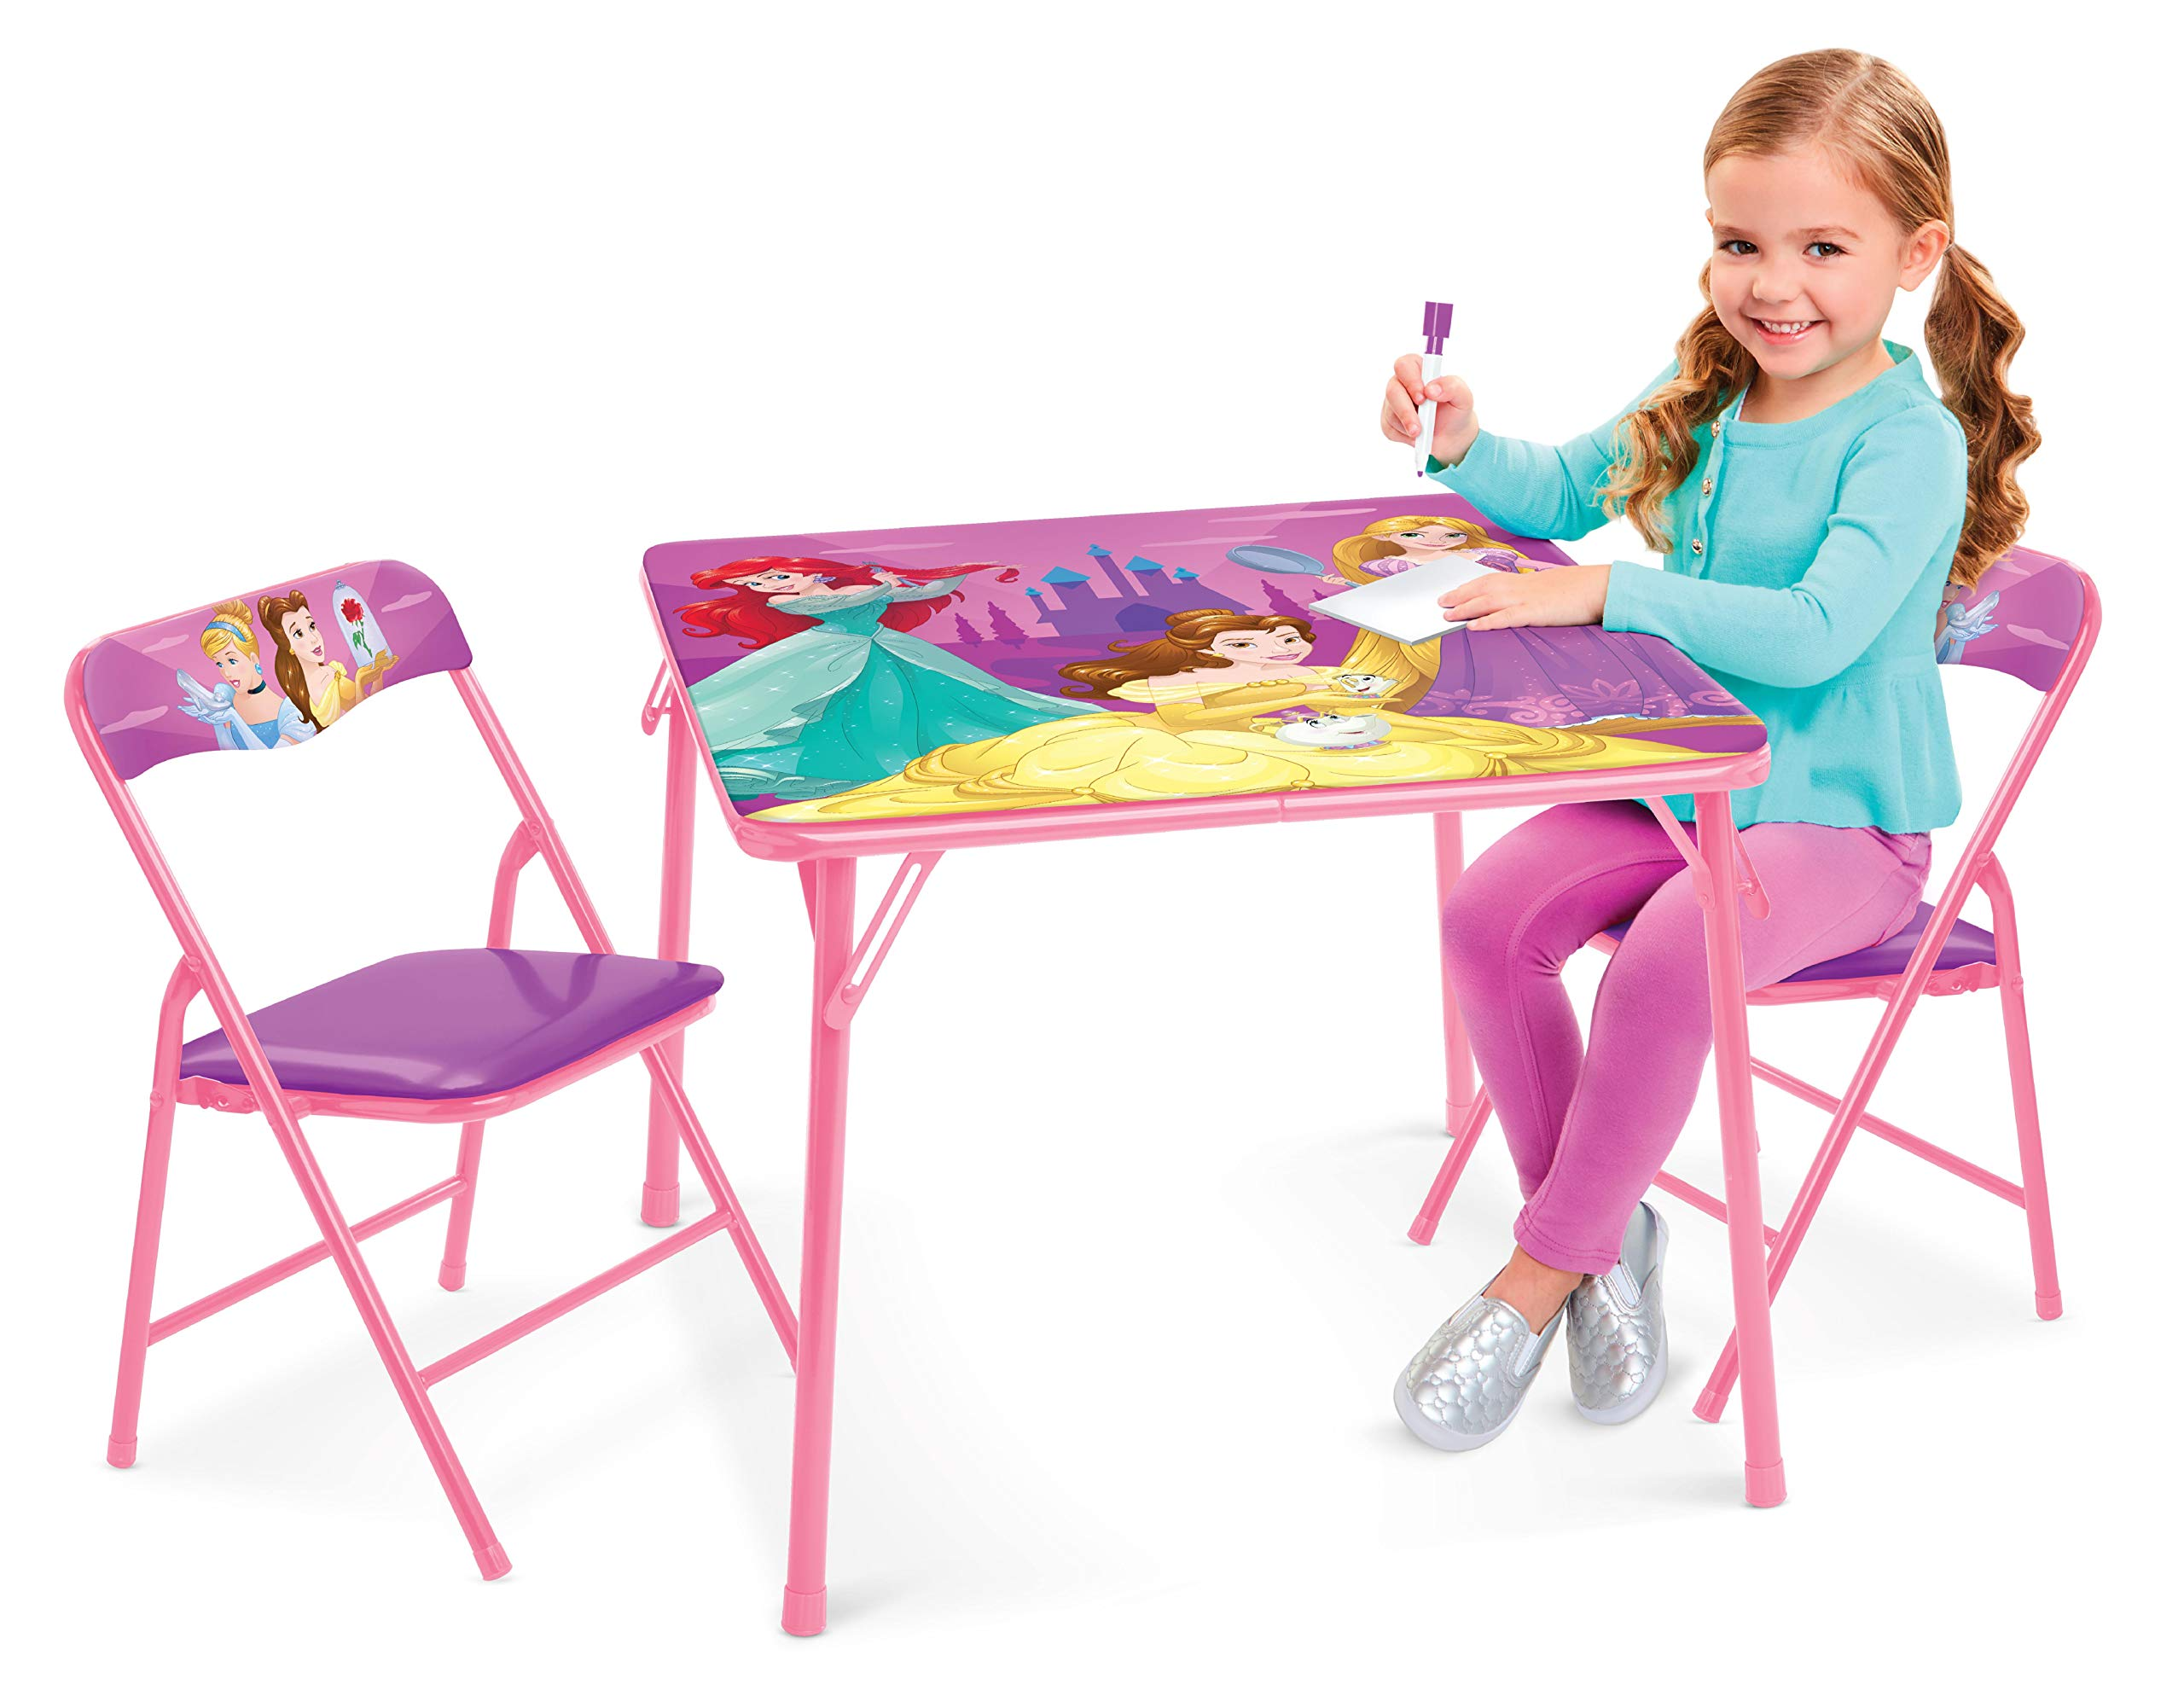 Disney Princess Table & Chairs - Explore Your World Activity Table (2) Chairs by Jakks